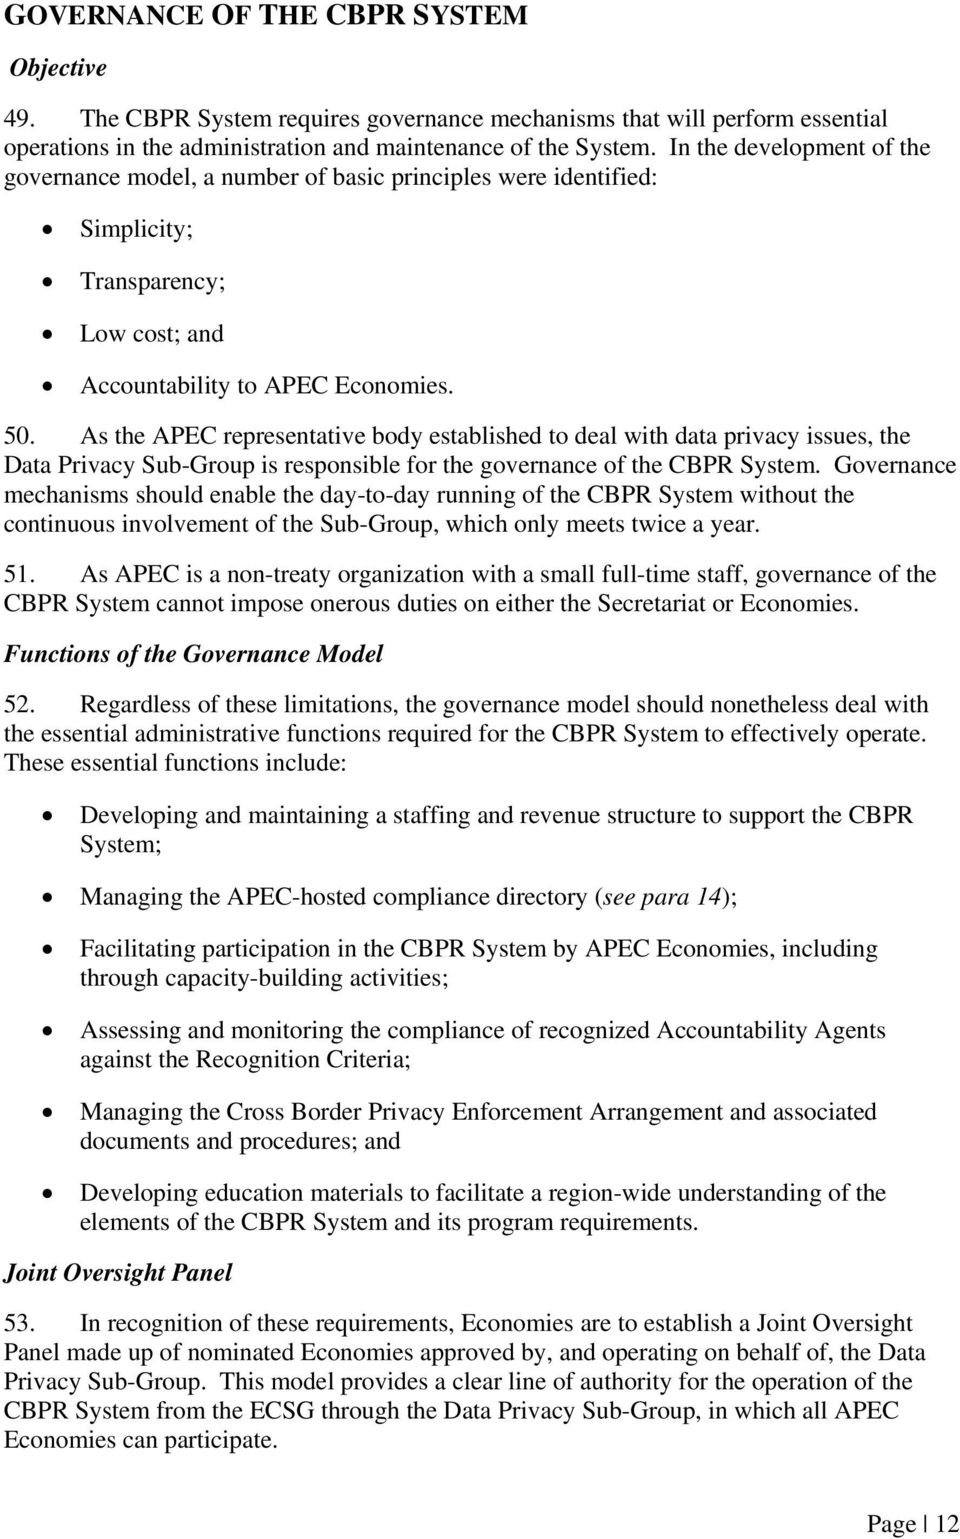 As the APEC representative body established to deal with data privacy issues, the Data Privacy Sub-Group is responsible for the governance of the CBPR System.